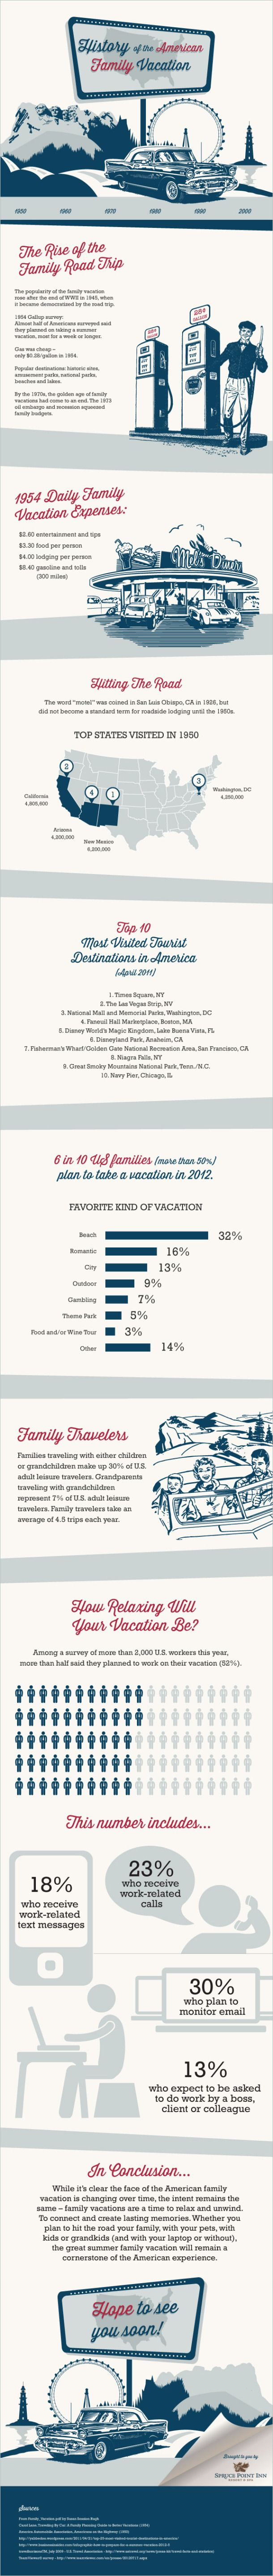 History Of The American Family Vacation Infographic History